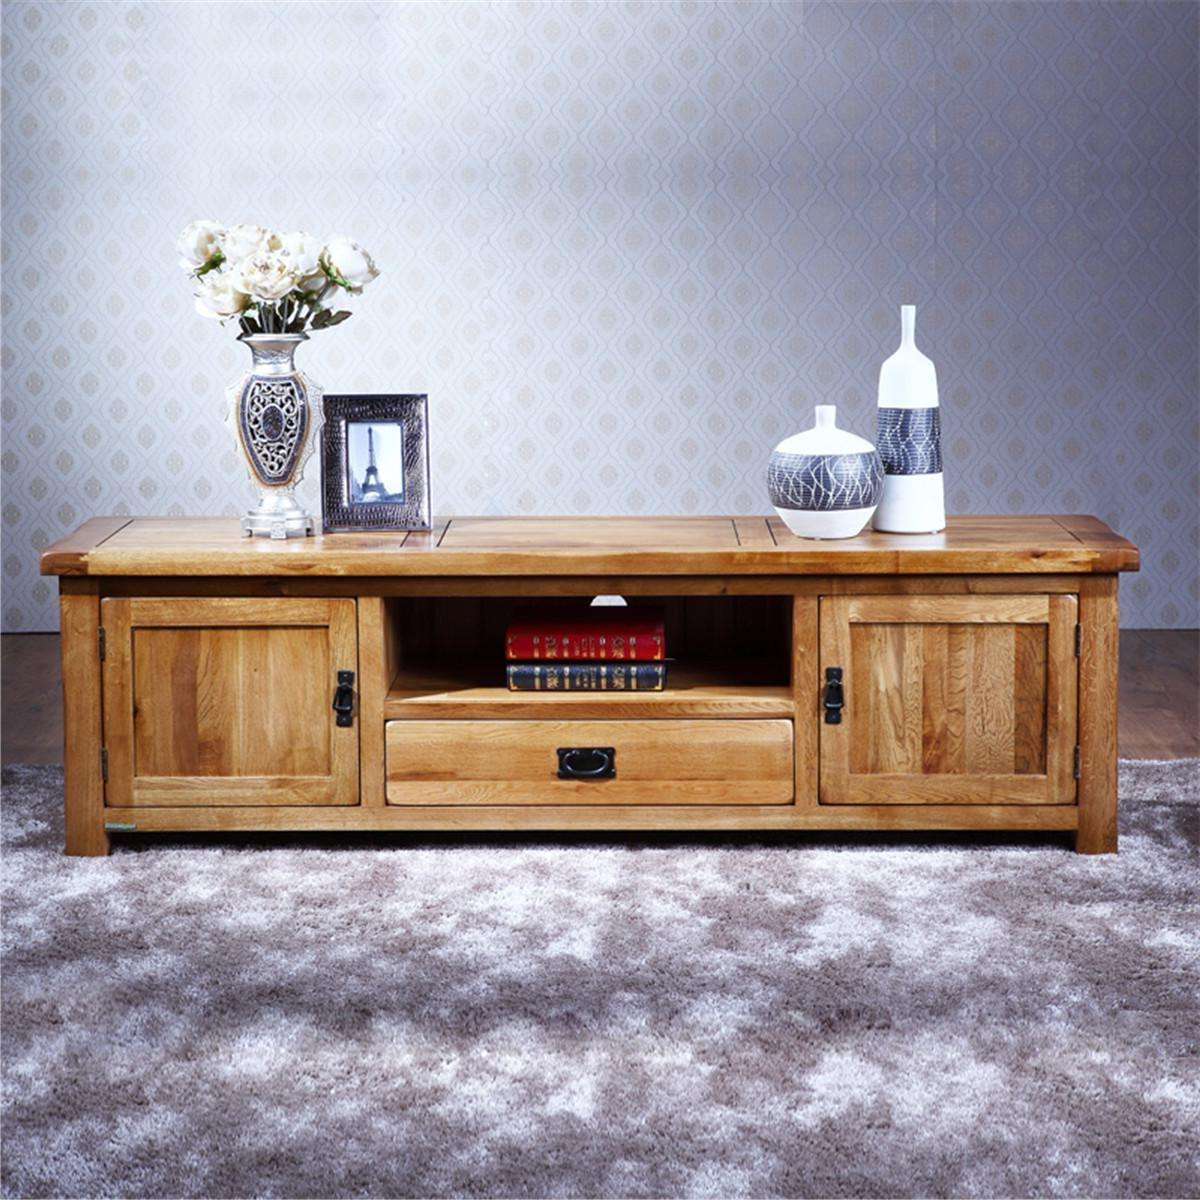 Beautiful Solid Oak Tv Stand 76 For Home Remodel Ideas With Solid With Oak Tv Stands Furniture (View 4 of 15)